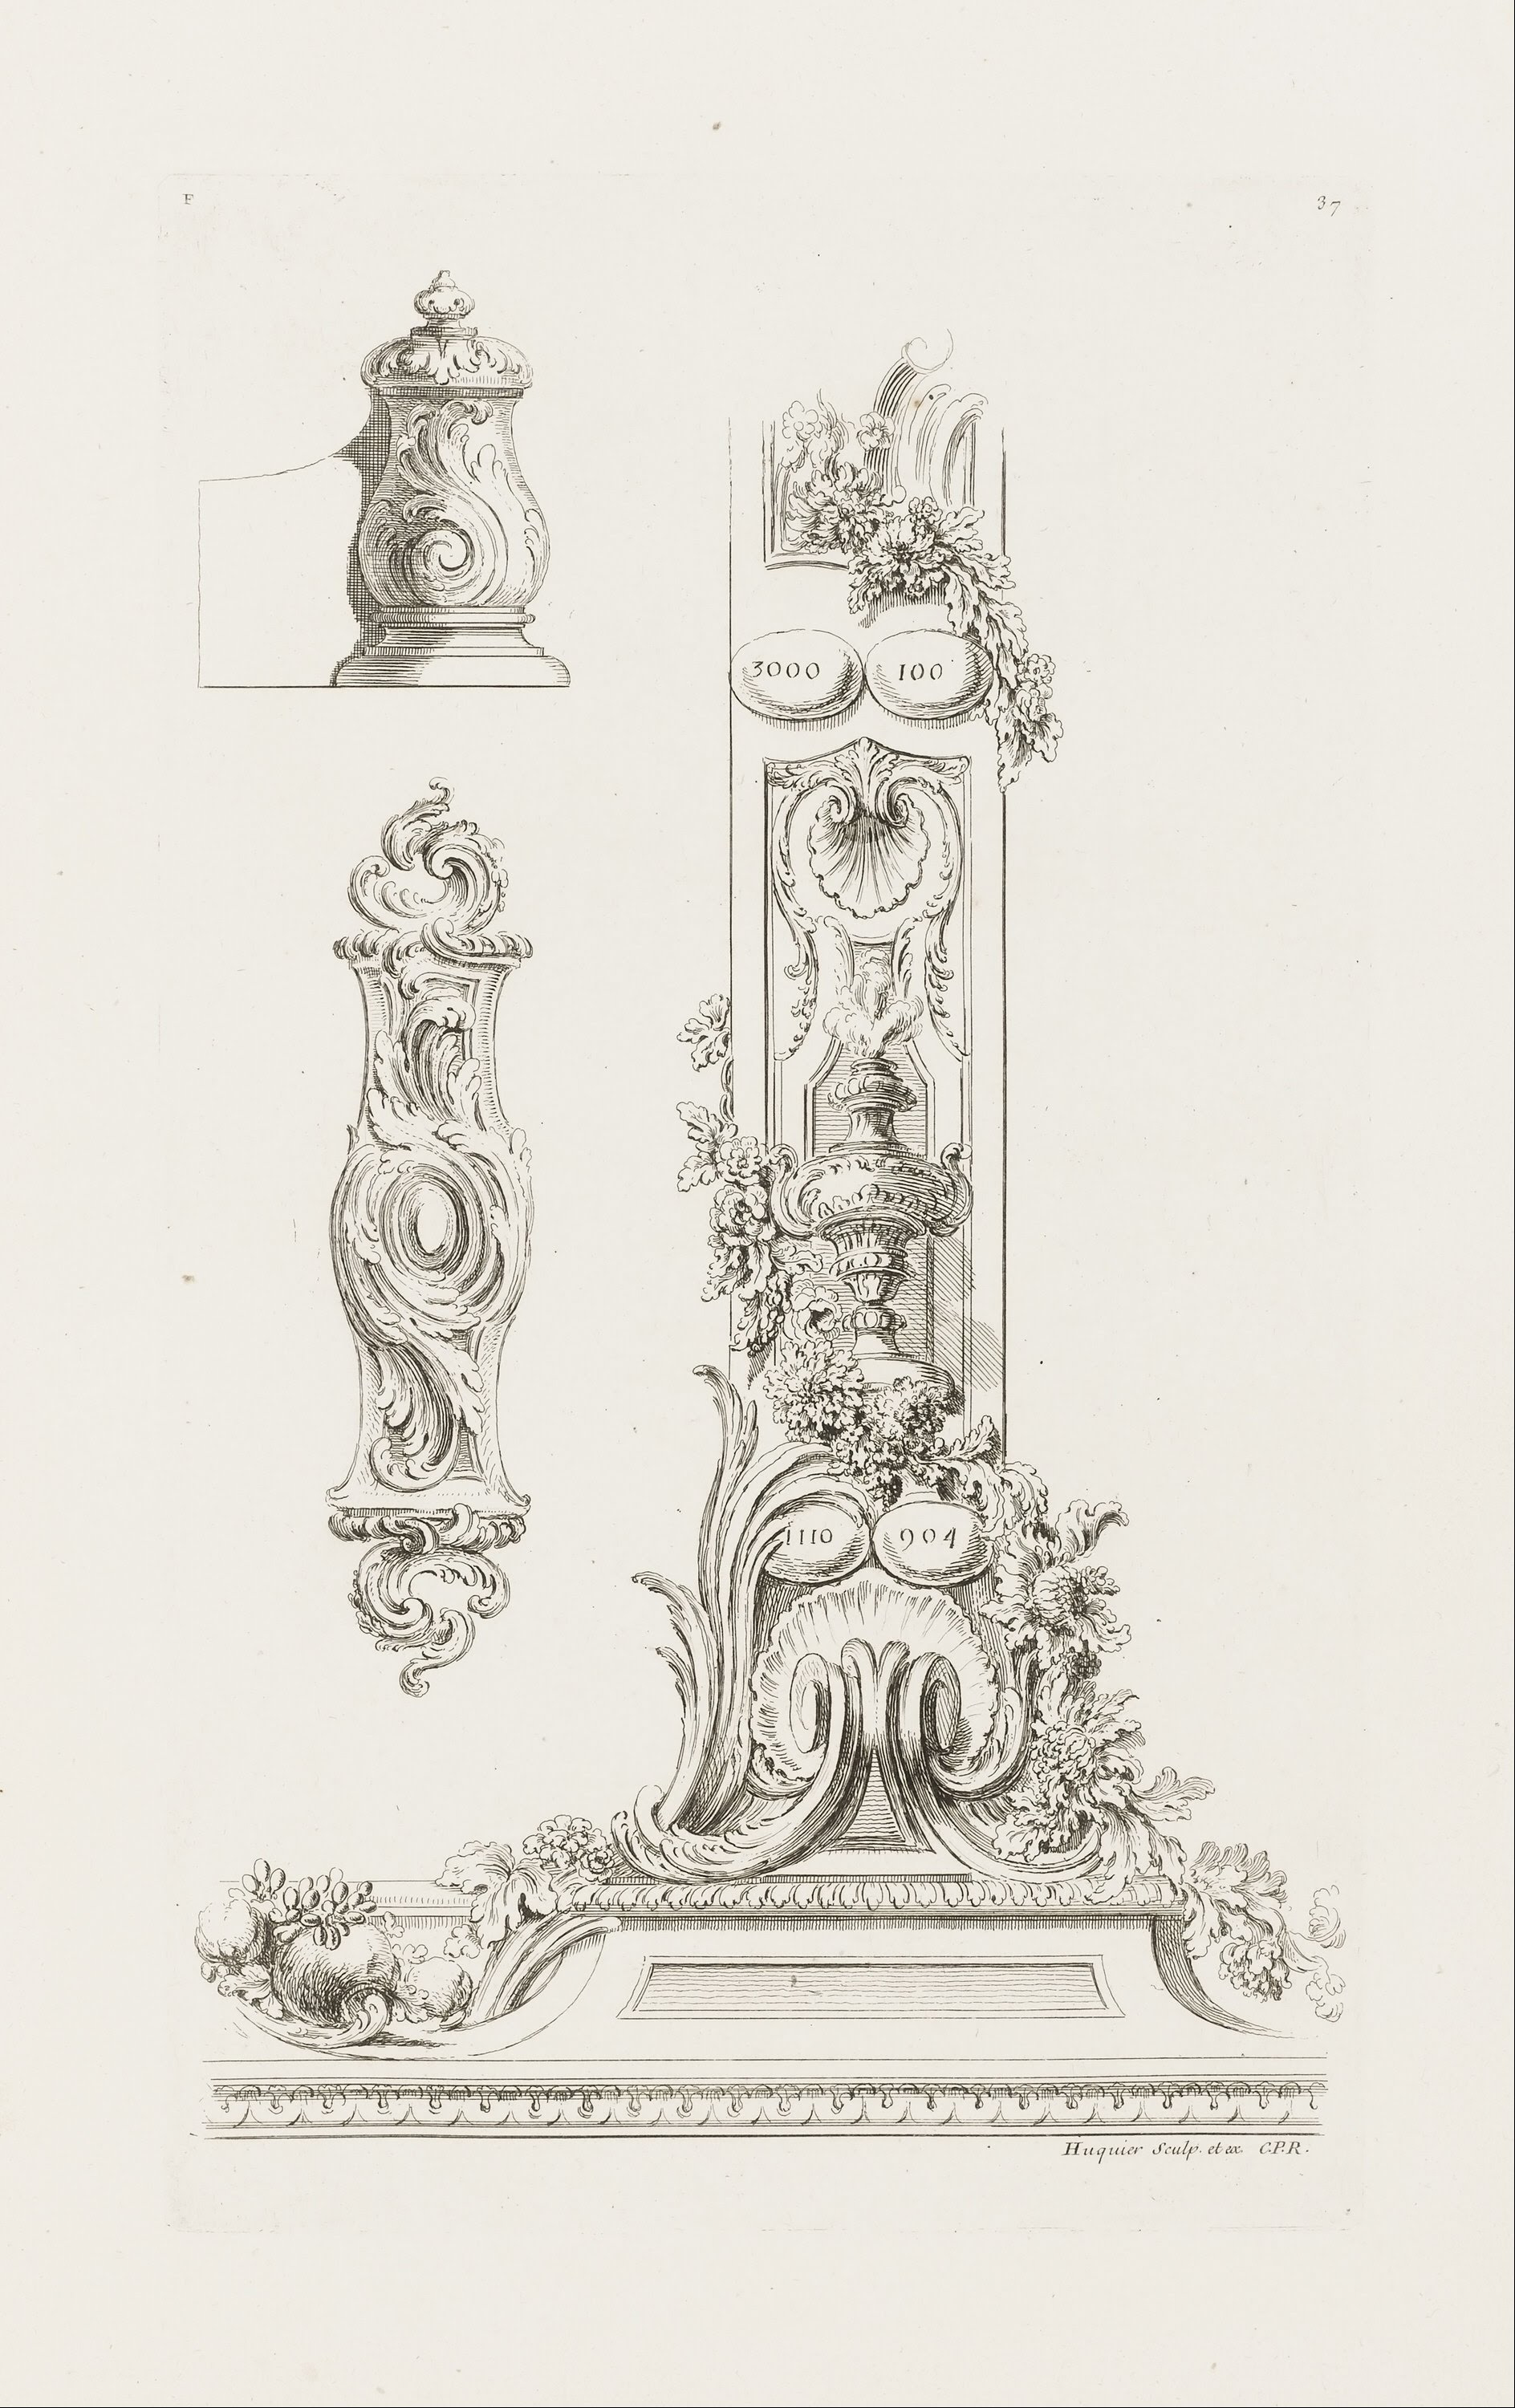 Filejuste Aurèle Meissonnier Design Of Fragments Of The Border